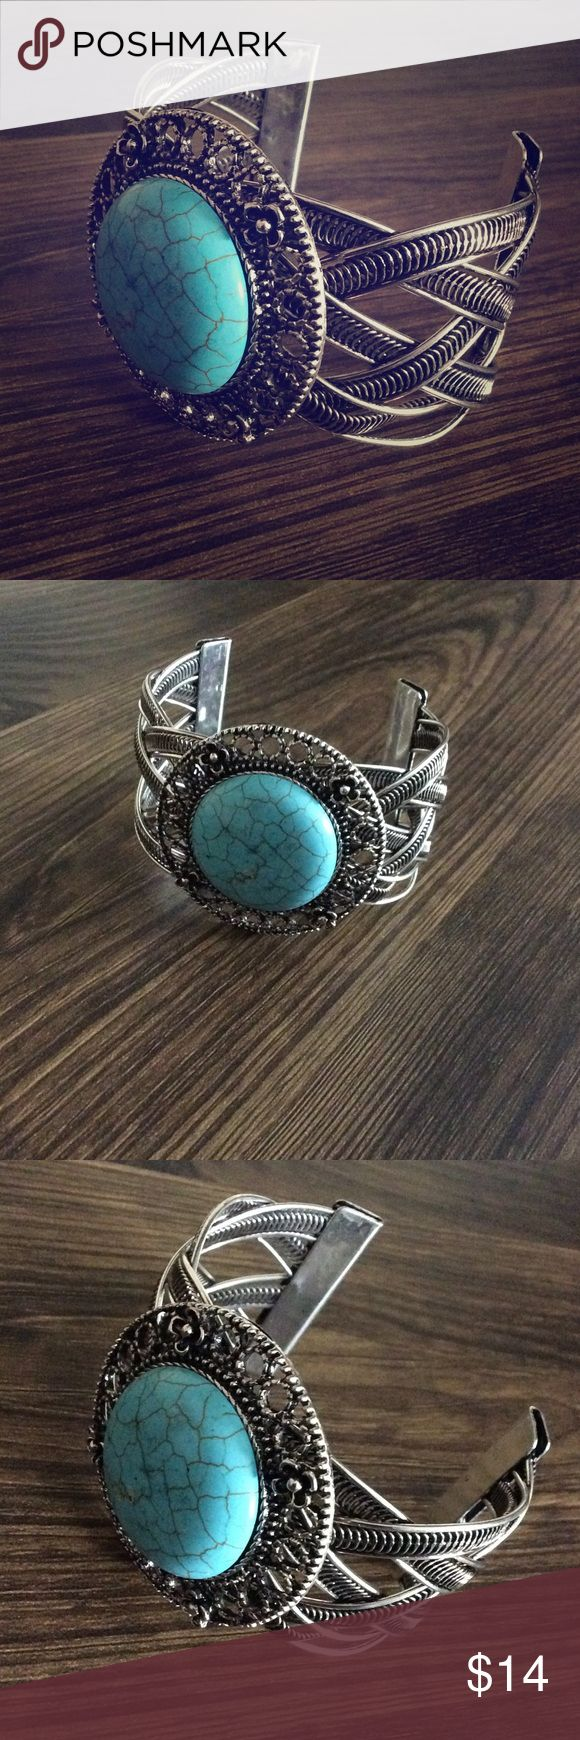 Large Turquoise Circle Stone Braided Cuff Bracelet This bracelet is open cuff and slightly flex. For this reason it'll fit most. Circle turquoise accent and made of mixed metals. neatandnice Jewelry Bracelets